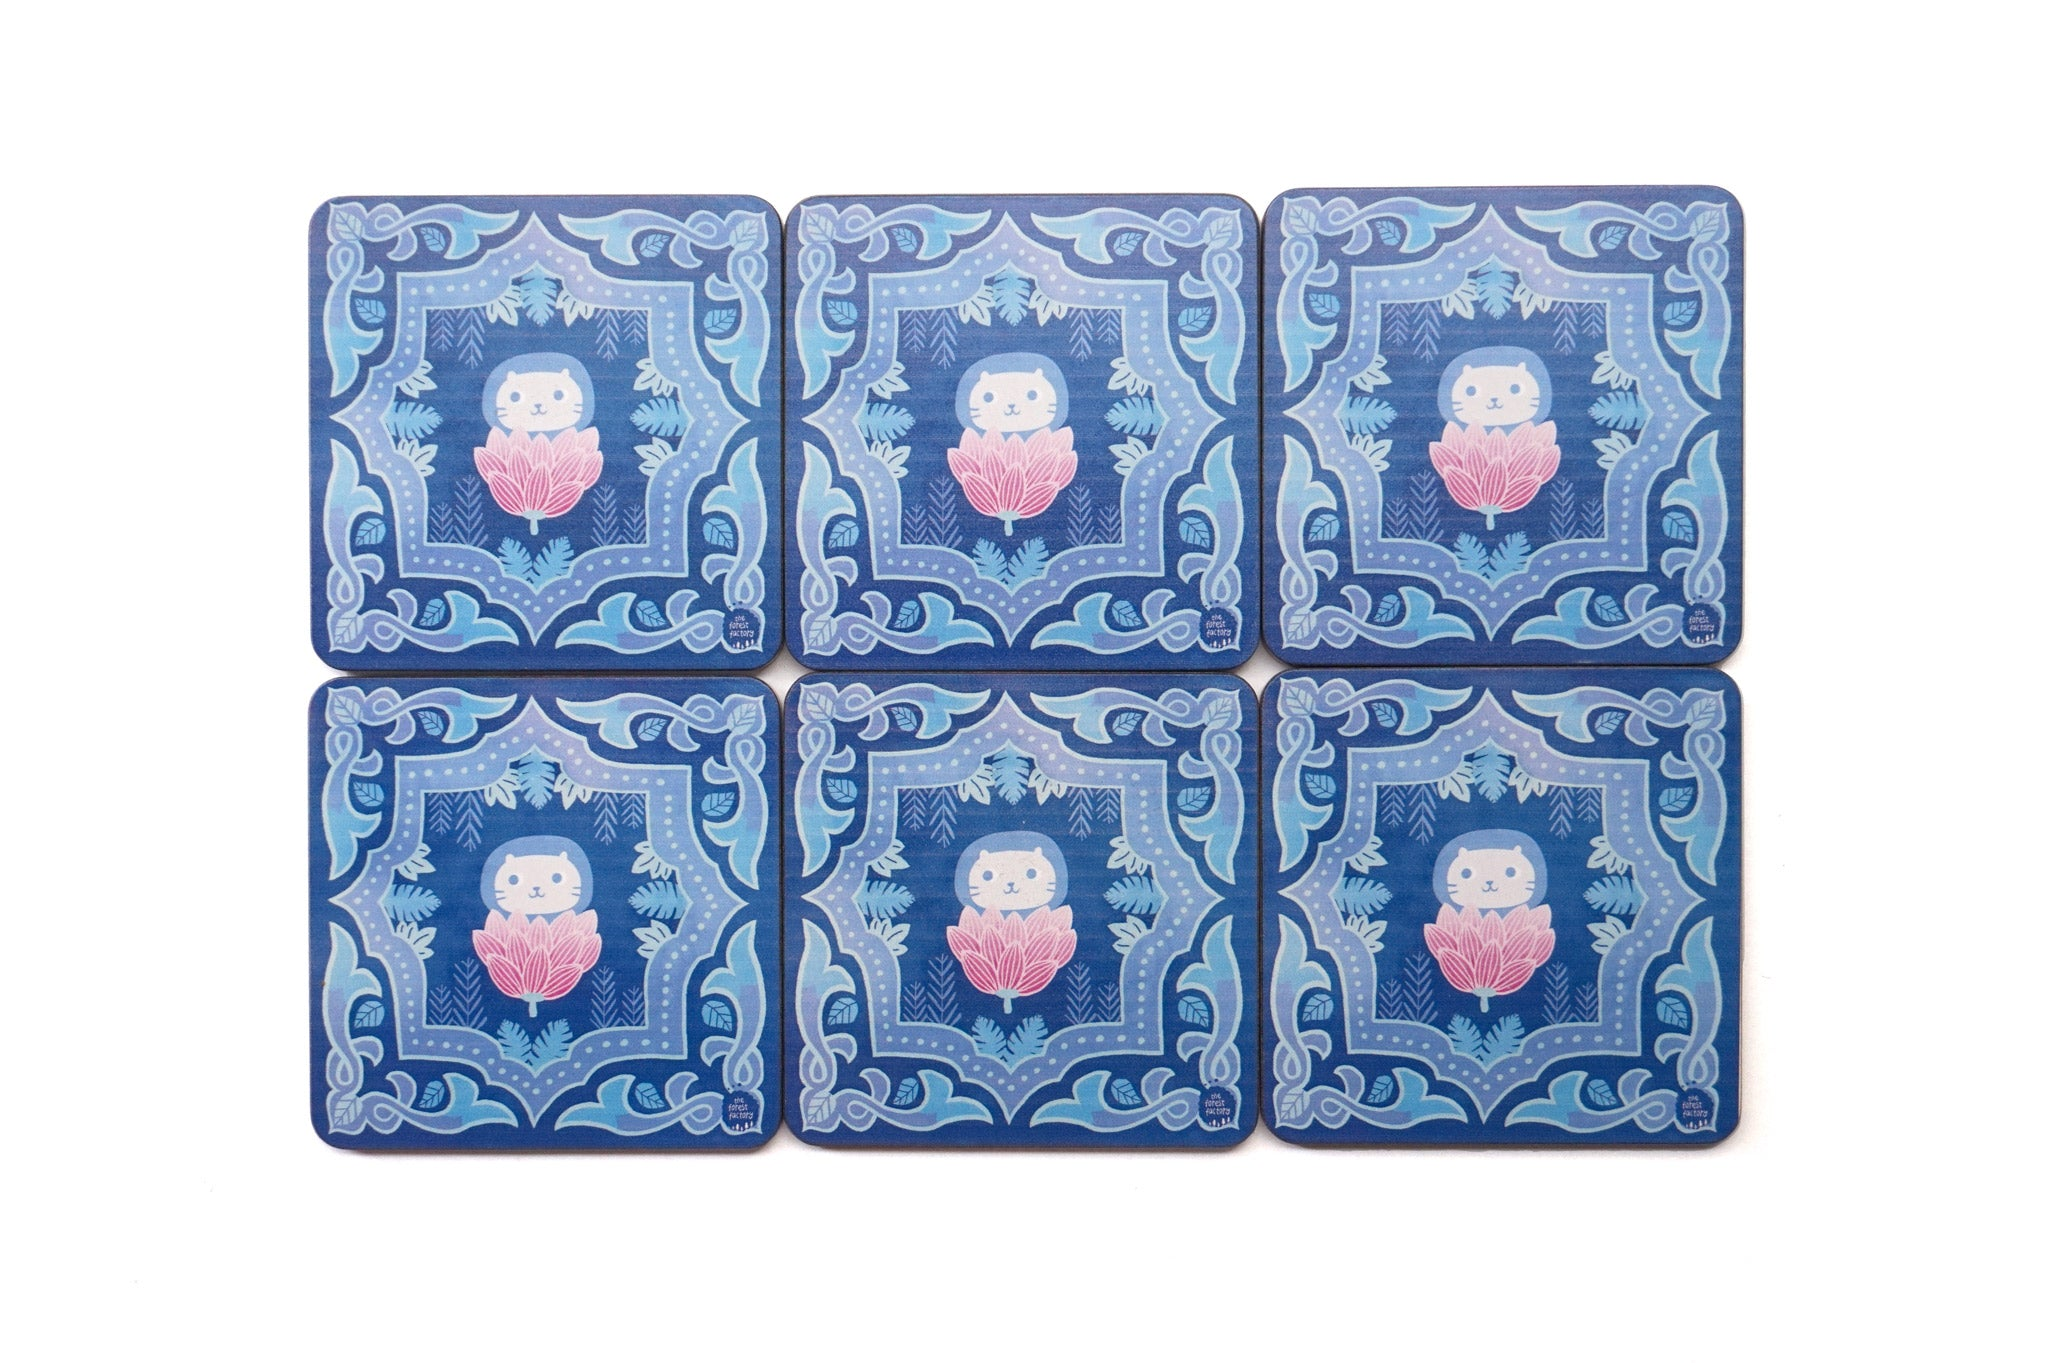 [Set of 6] Singapore Peranakan Coasters Blue Garden